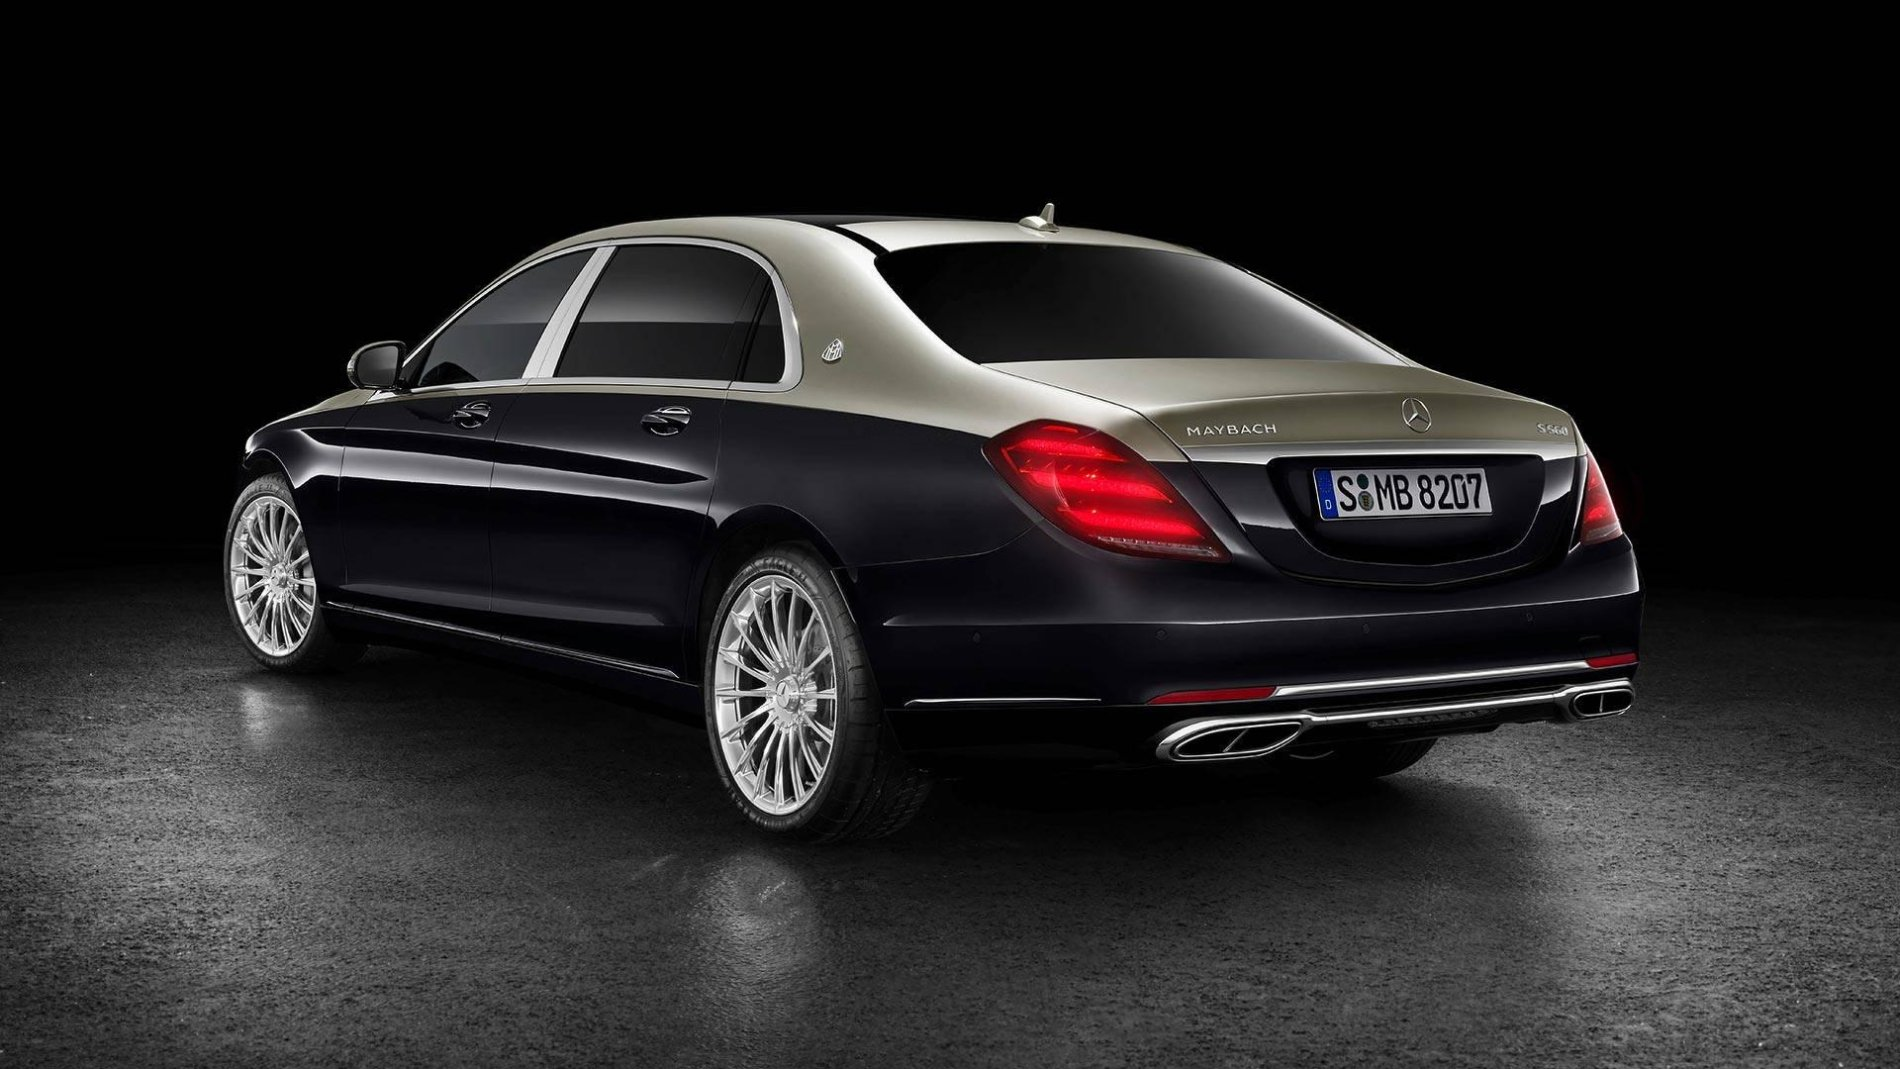 Mercedes-Maybach S-Class facelift - Mercedes-Maybach S-Class facelift